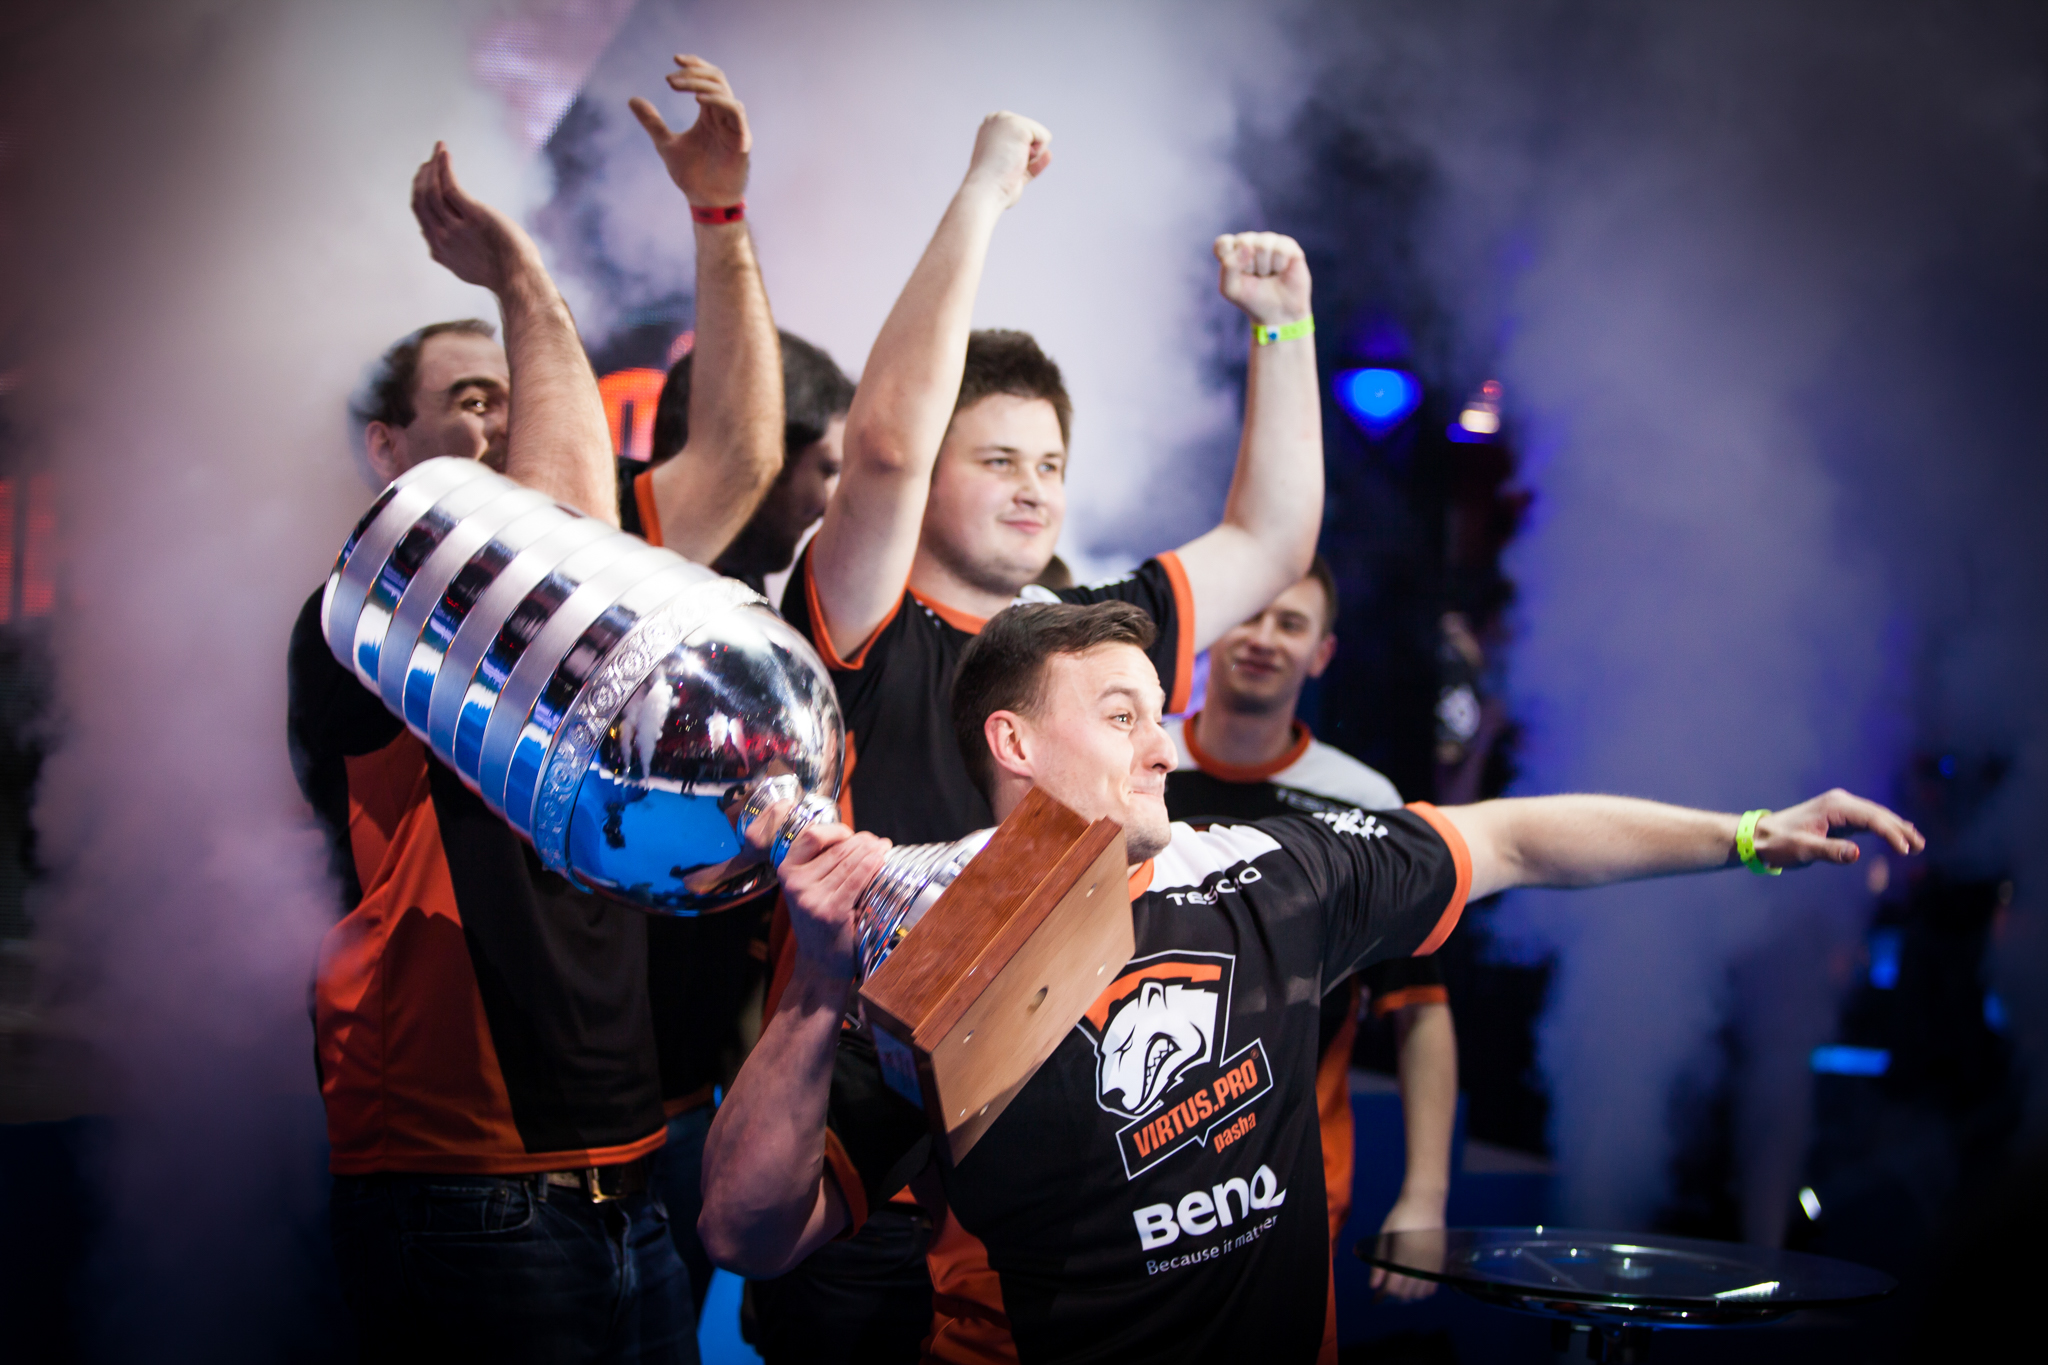 VP raises the trophy at EMS One Katowice 2014 - An important event in my career and still a cherished favorite